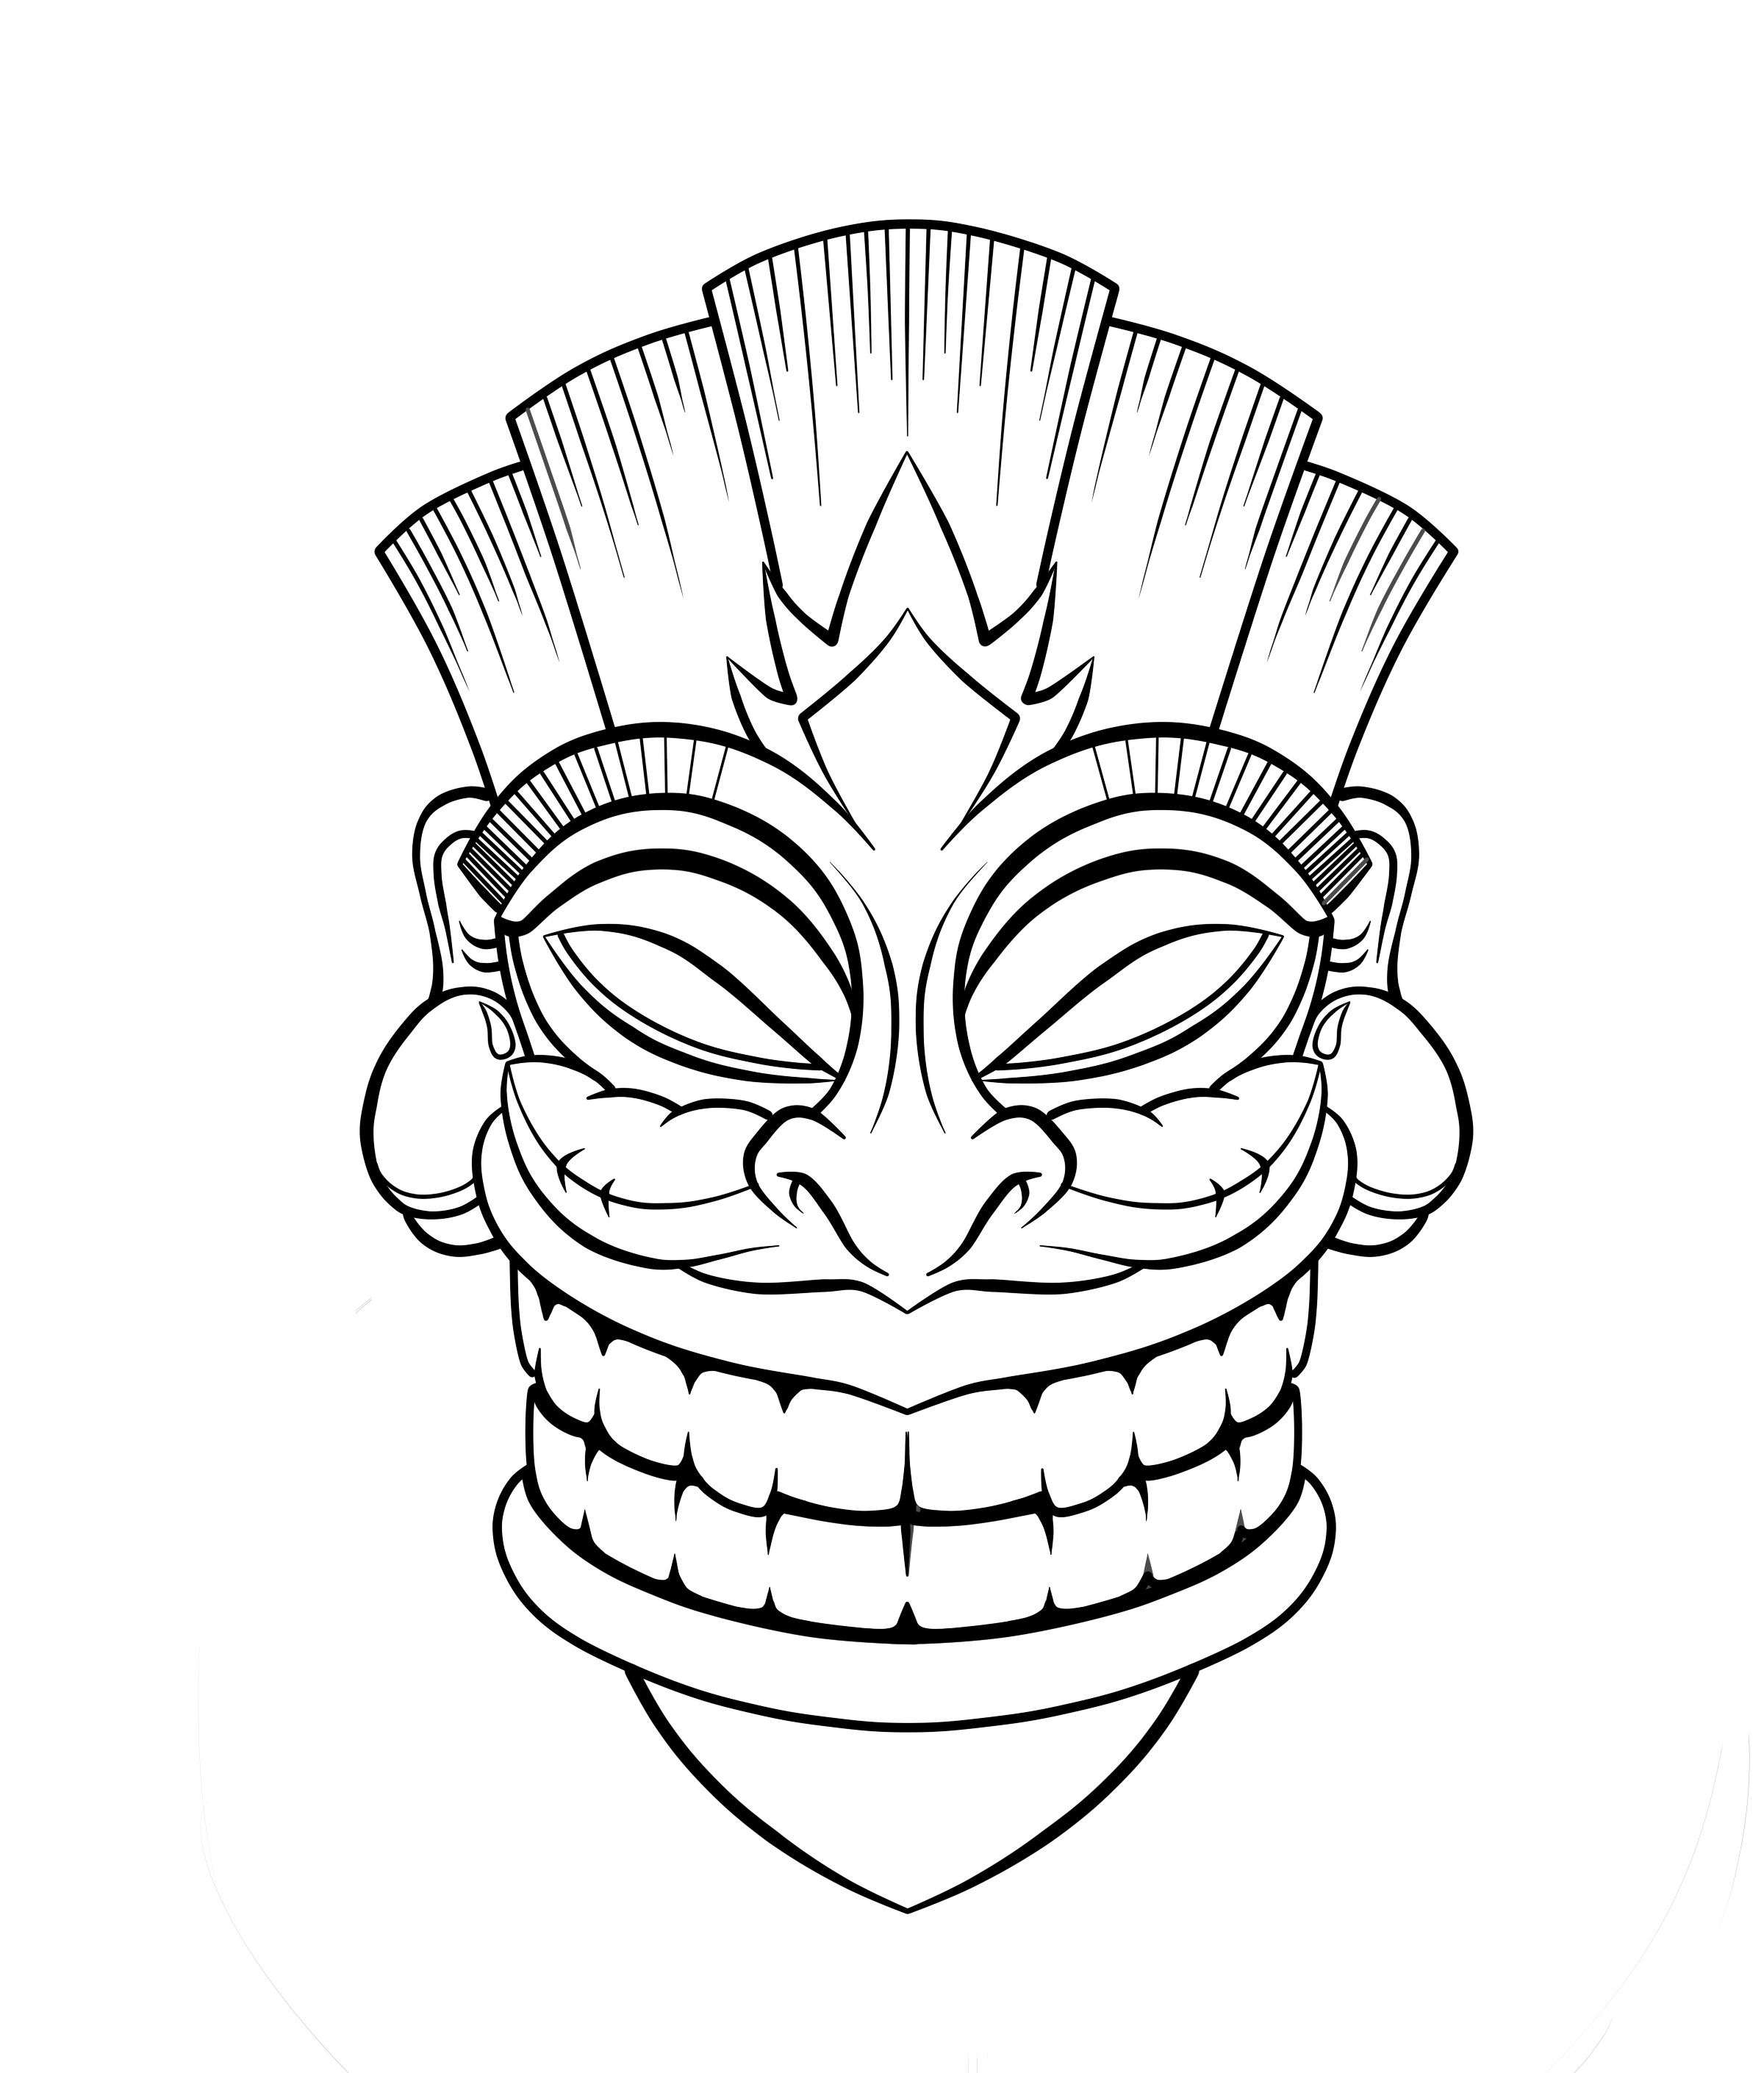 11 Pics Of Tiki Head Coloring Pages Printable Printable Tiki